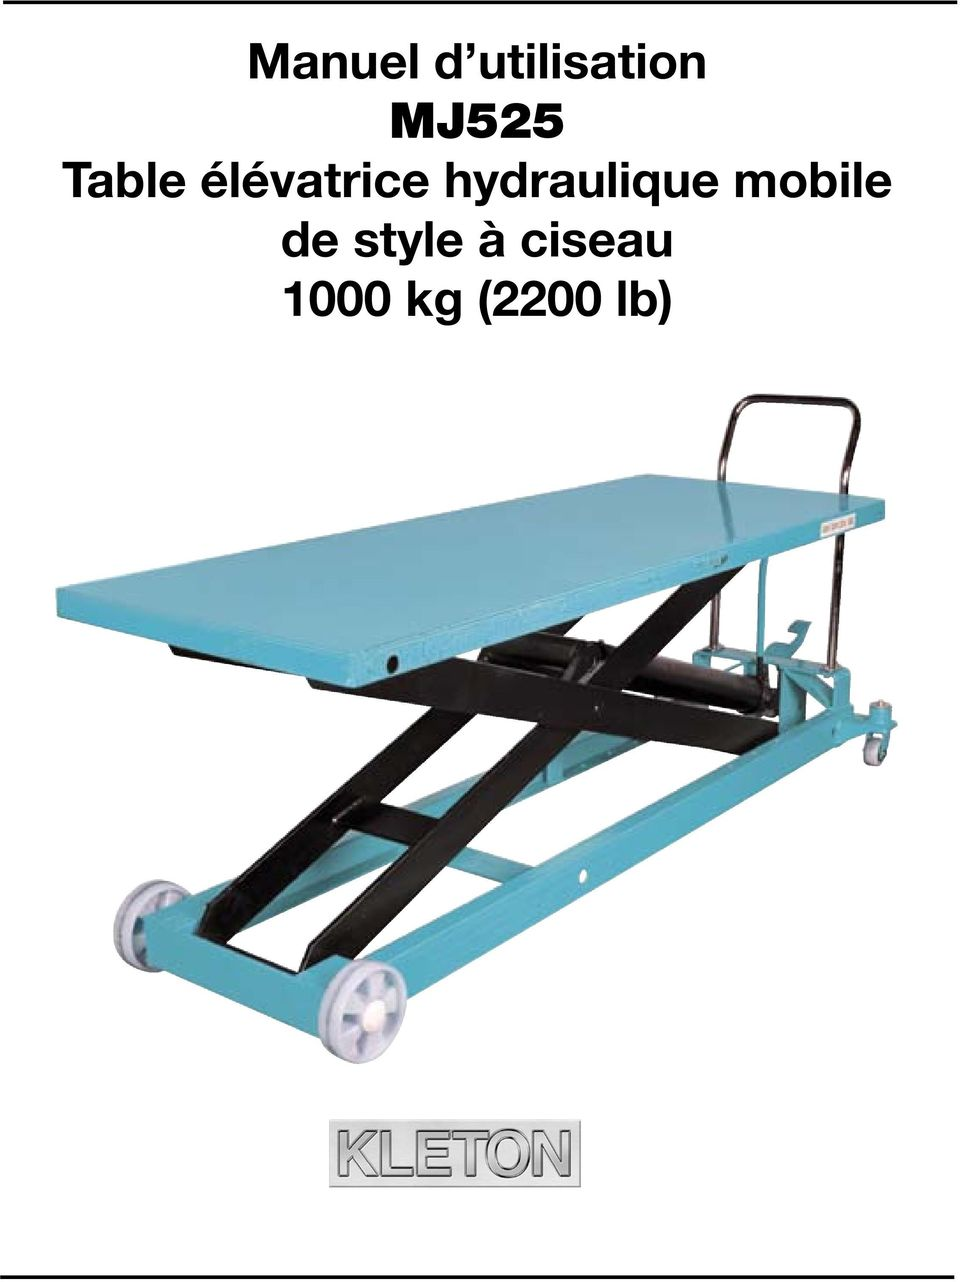 hydraulique mobile de